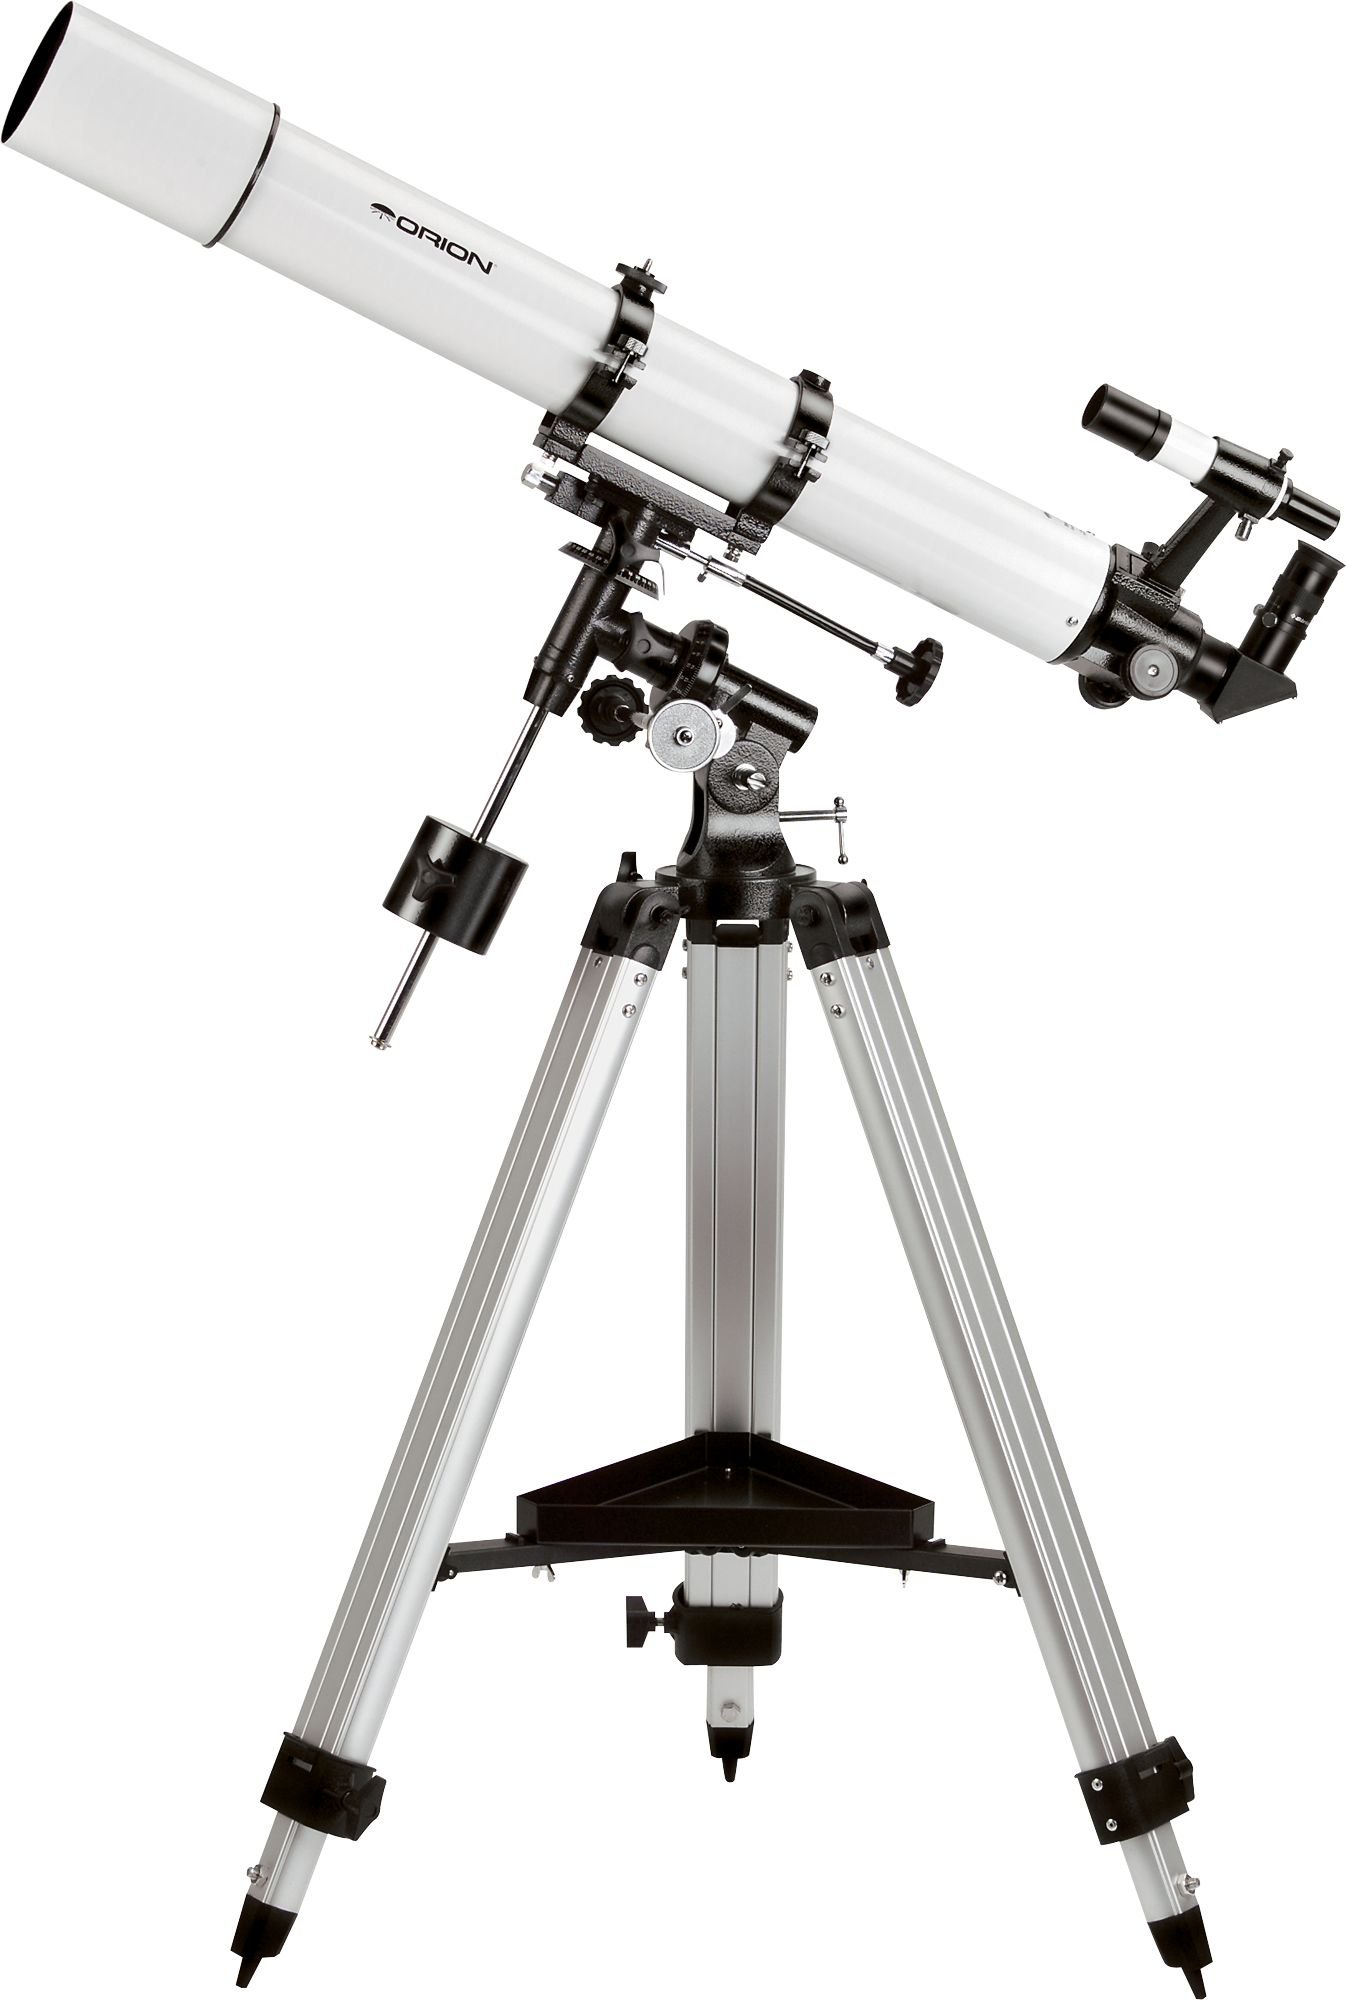 Orion 9024 AstroView Equatorial Refractor